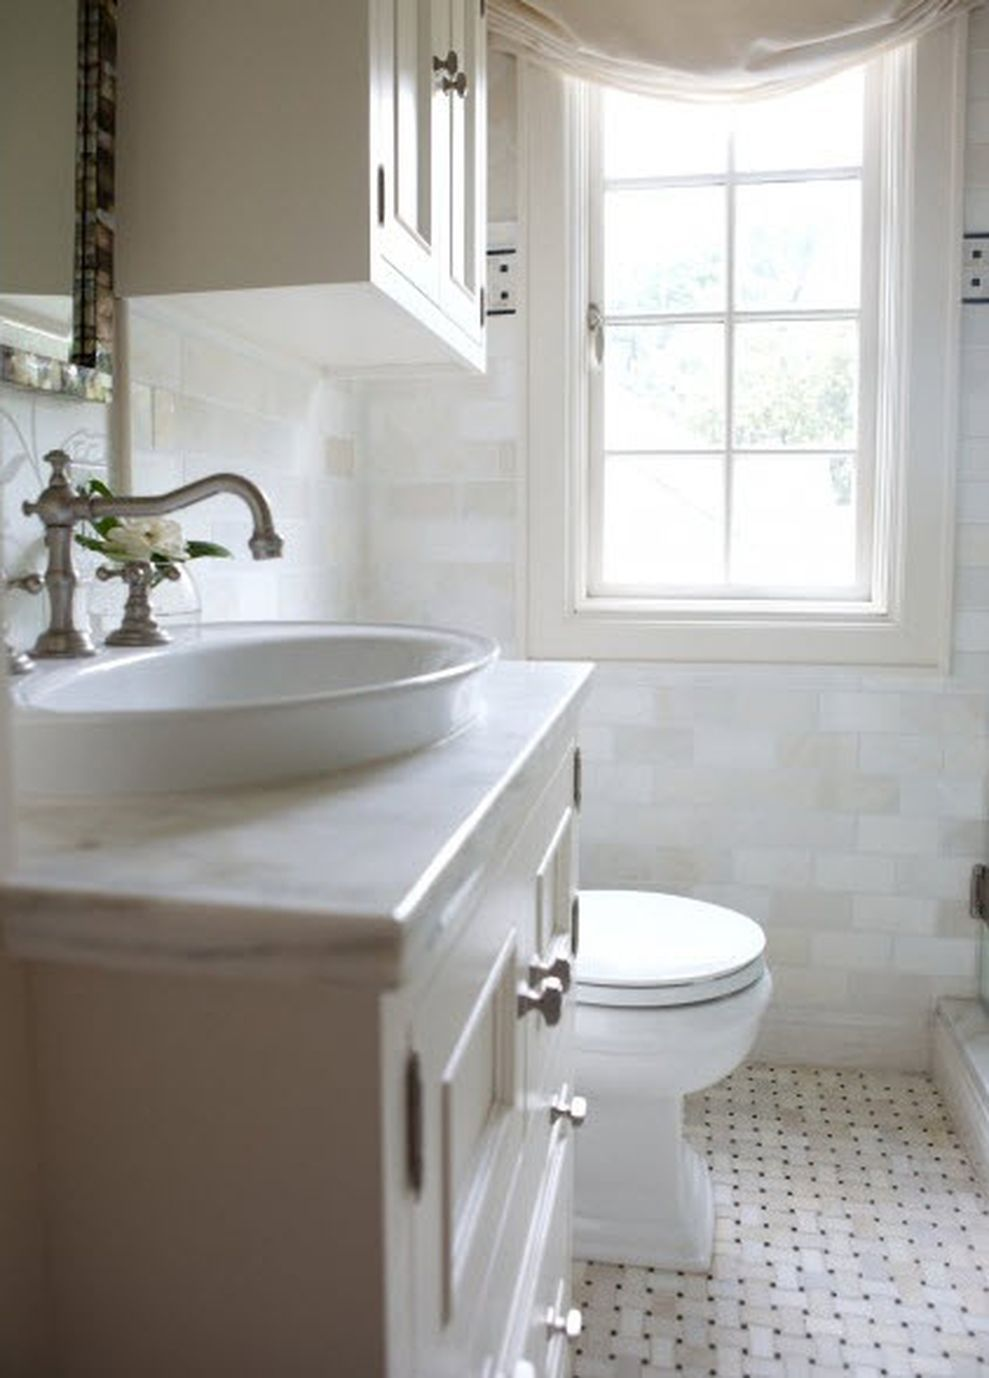 Small Bathroom Designs On A Budget Awesome 29 Tiny Bathroom Remodel Ideas On A Budget  Tiny Bathrooms Design Inspiration